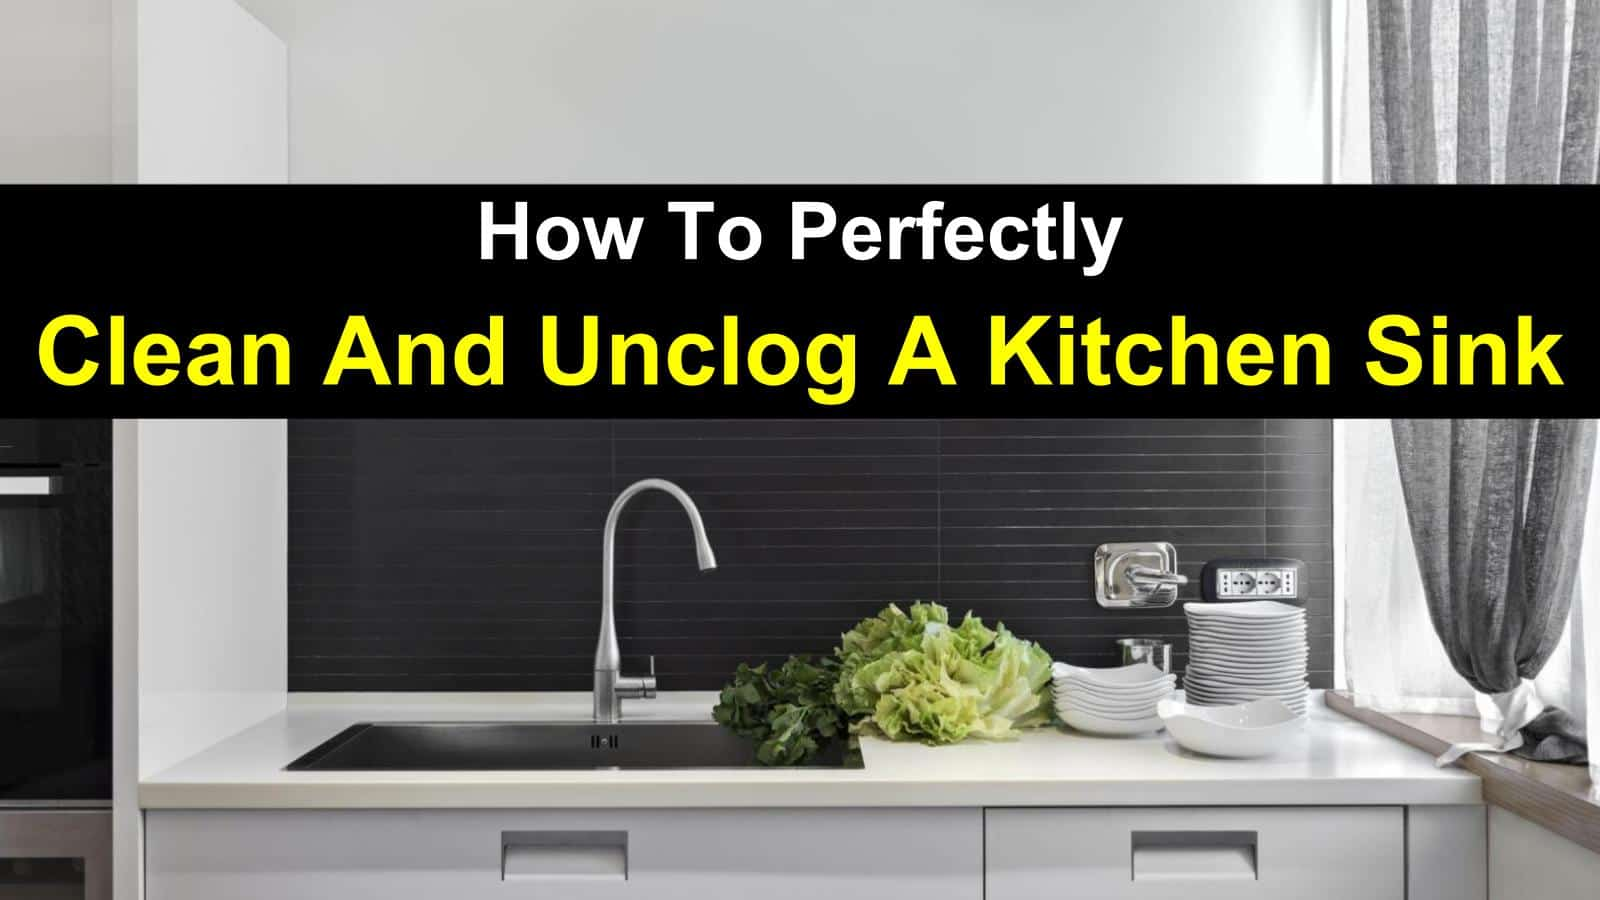 Unclog Kitchen Sink Home Design